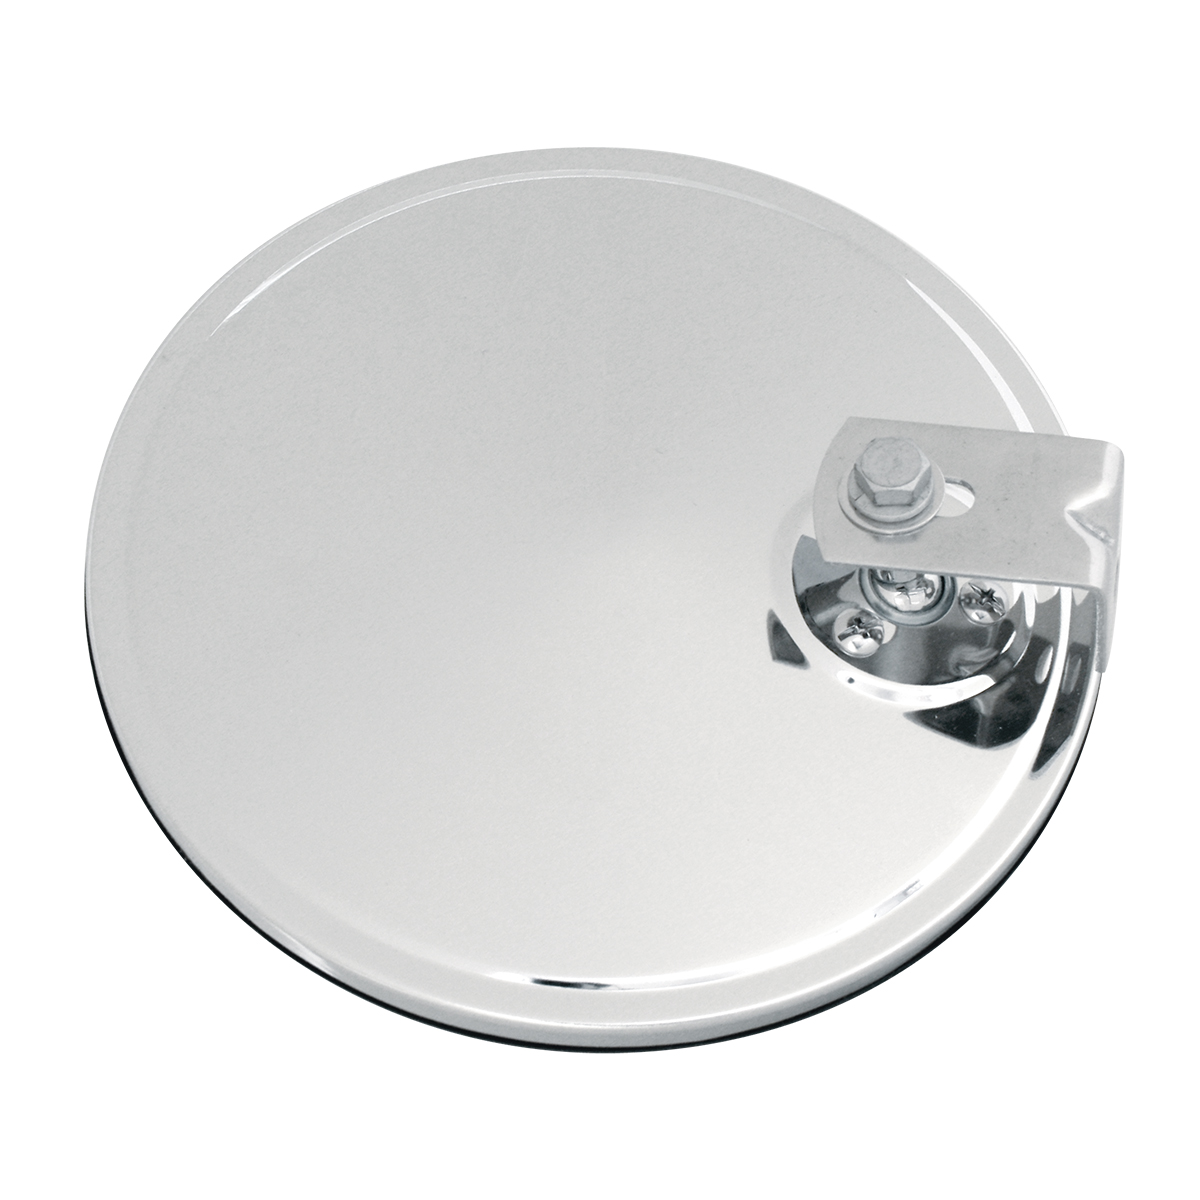 Convex Blind Spot Mirrors with Offset Mount